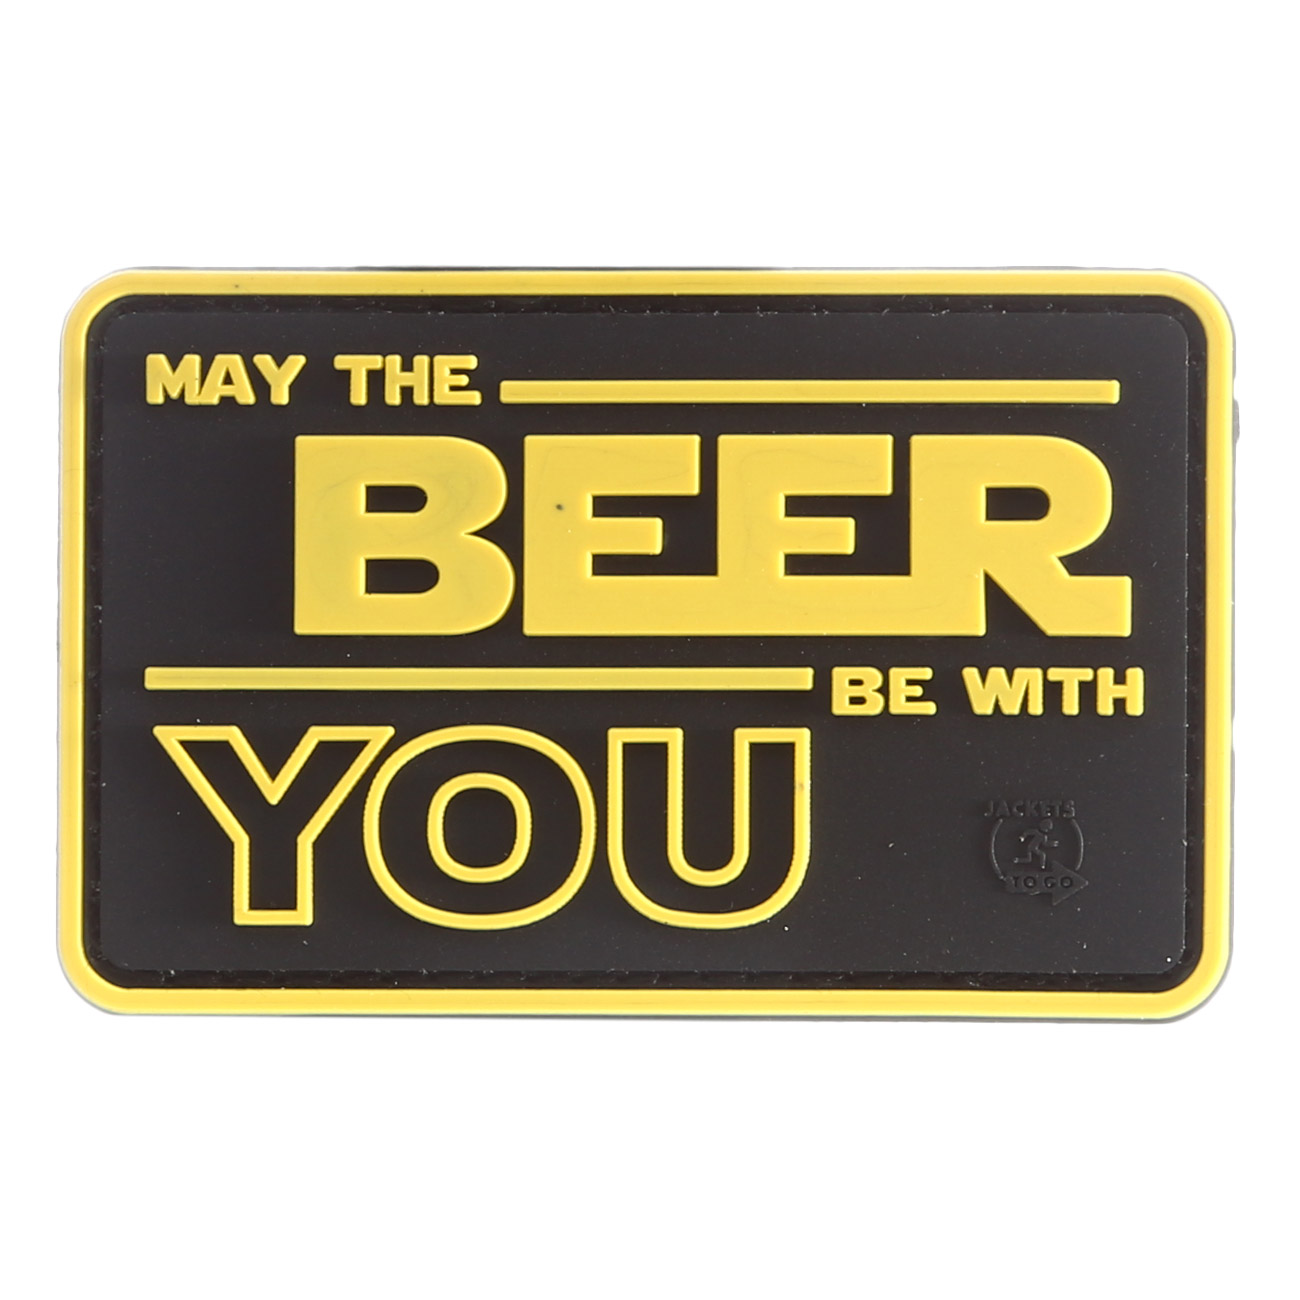 JTG 3D Rubber Patch May The Beer With You 0